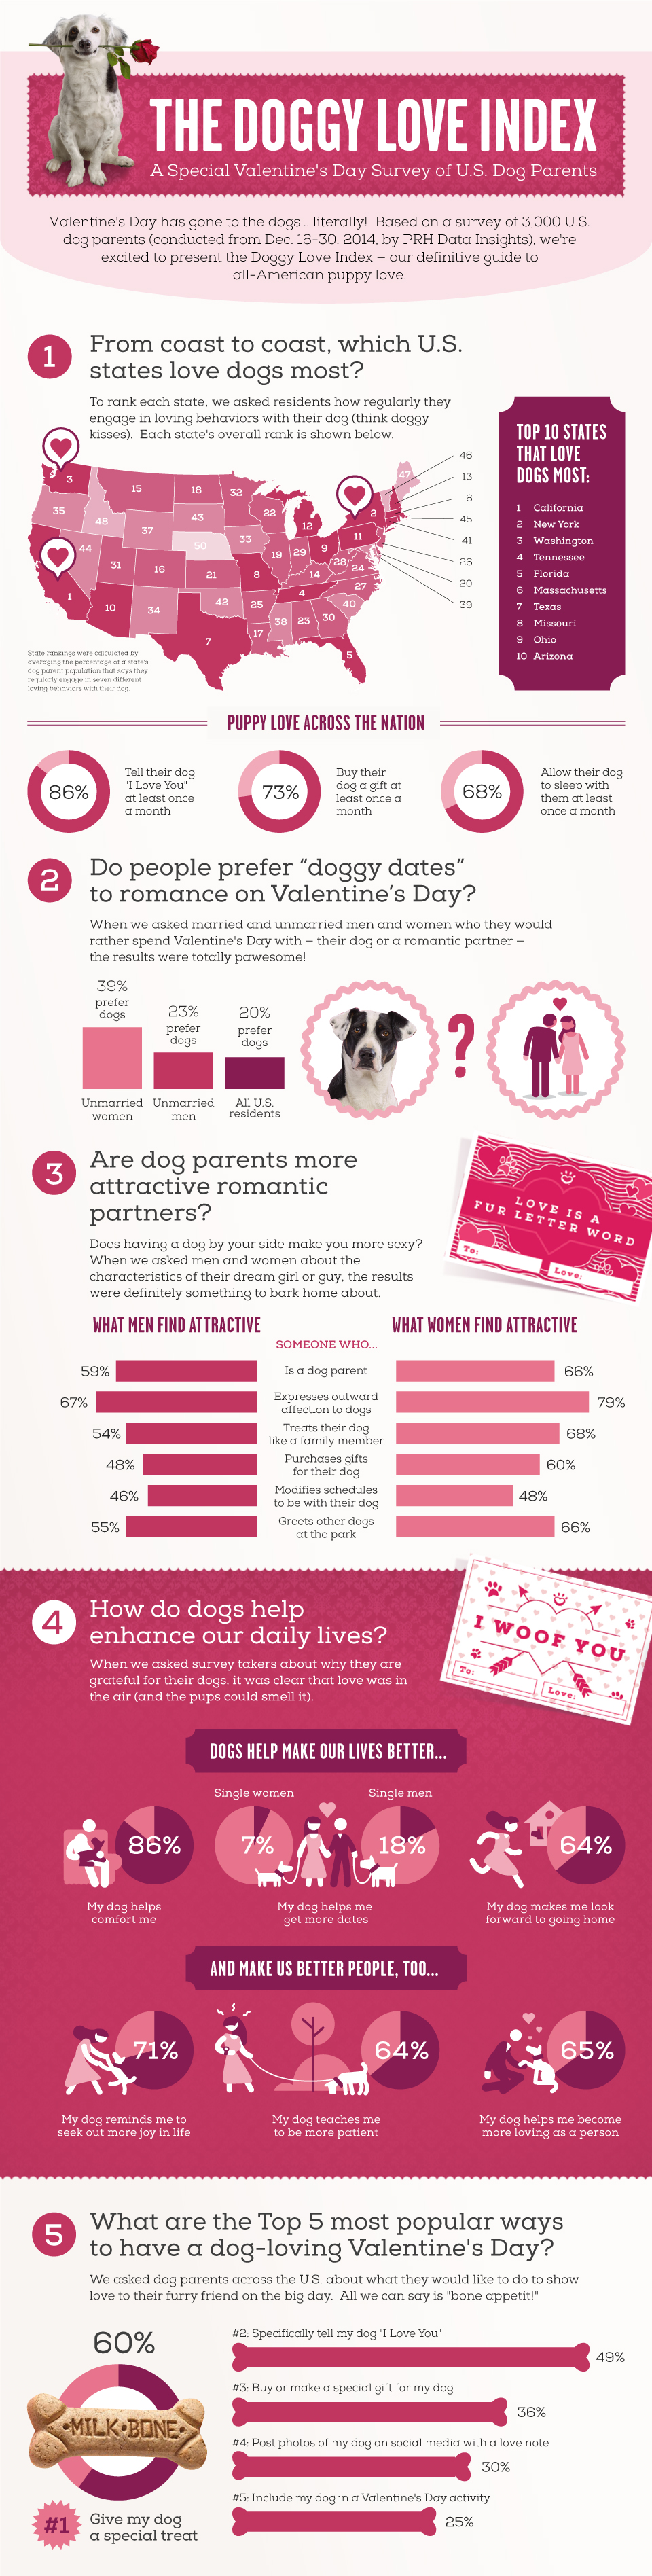 doggylove infographic national RAPP (1)